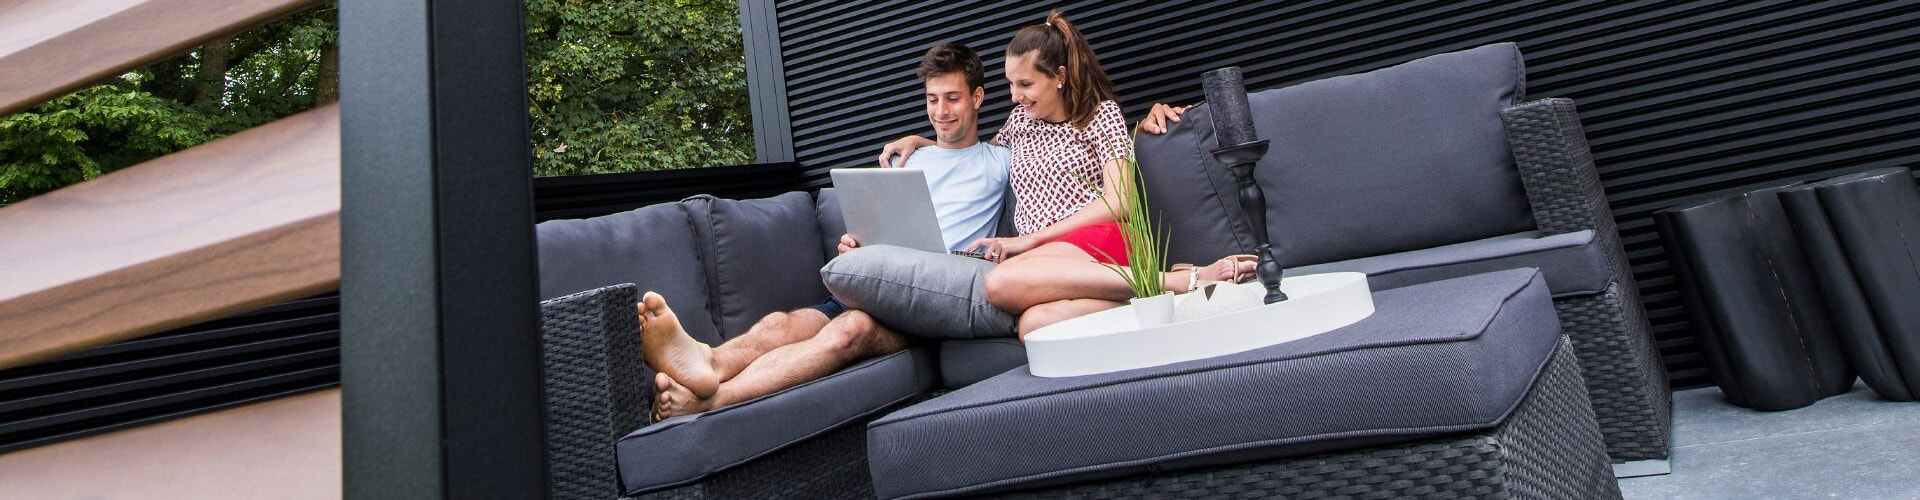 Couple with laptop sitting on outdoor furniture